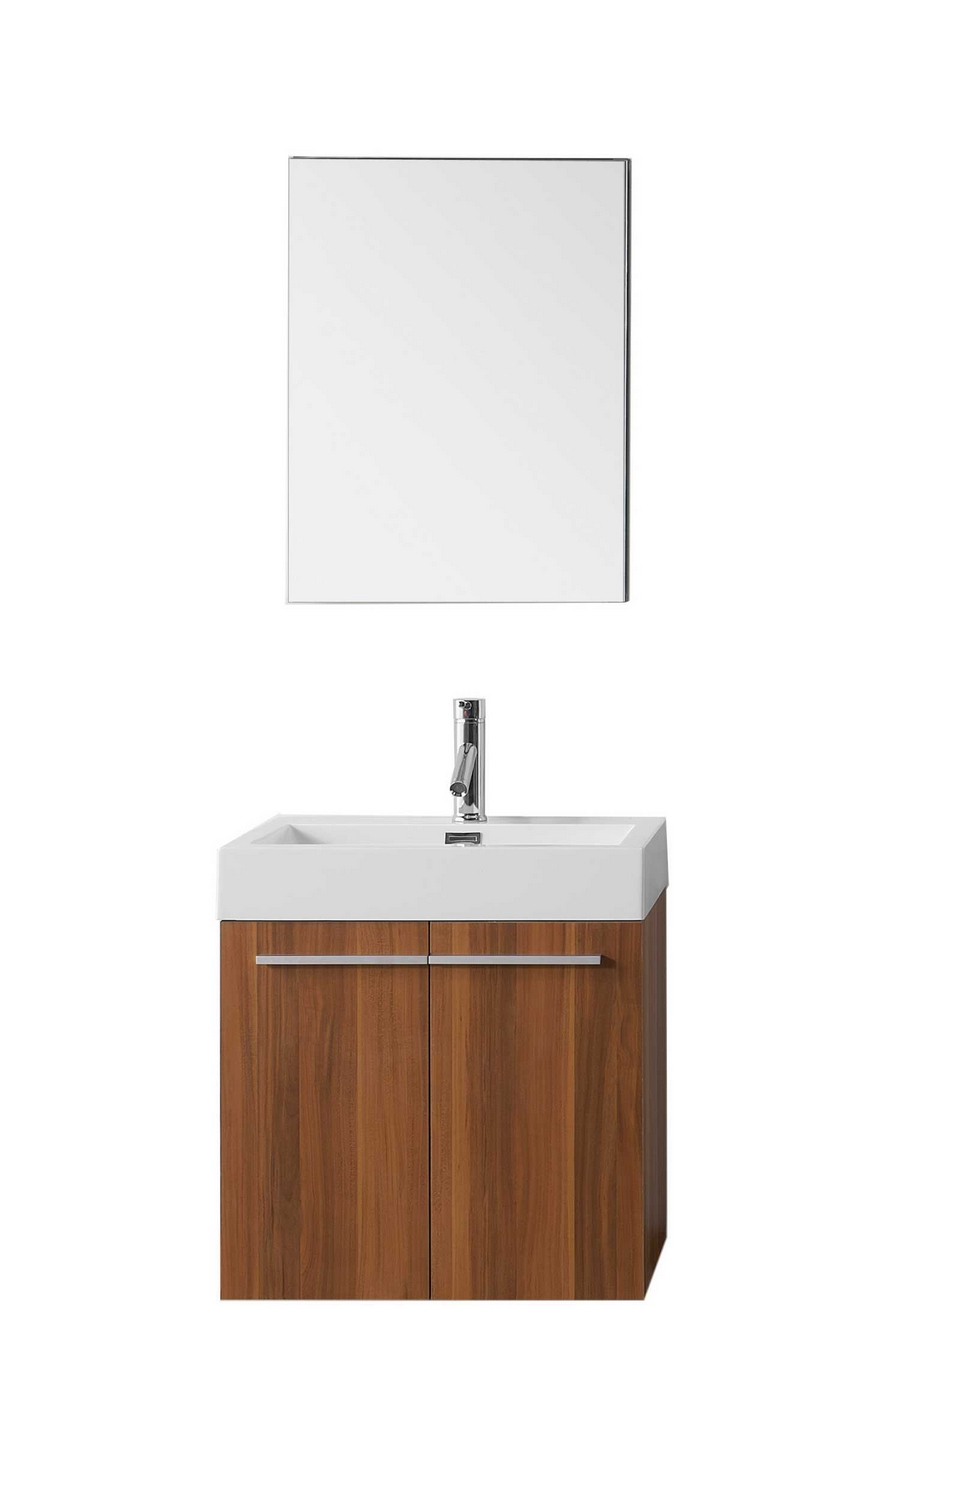 USA Midori 24quot; Single Bathroom Vanity Cabinet Set in Plum Polymarble